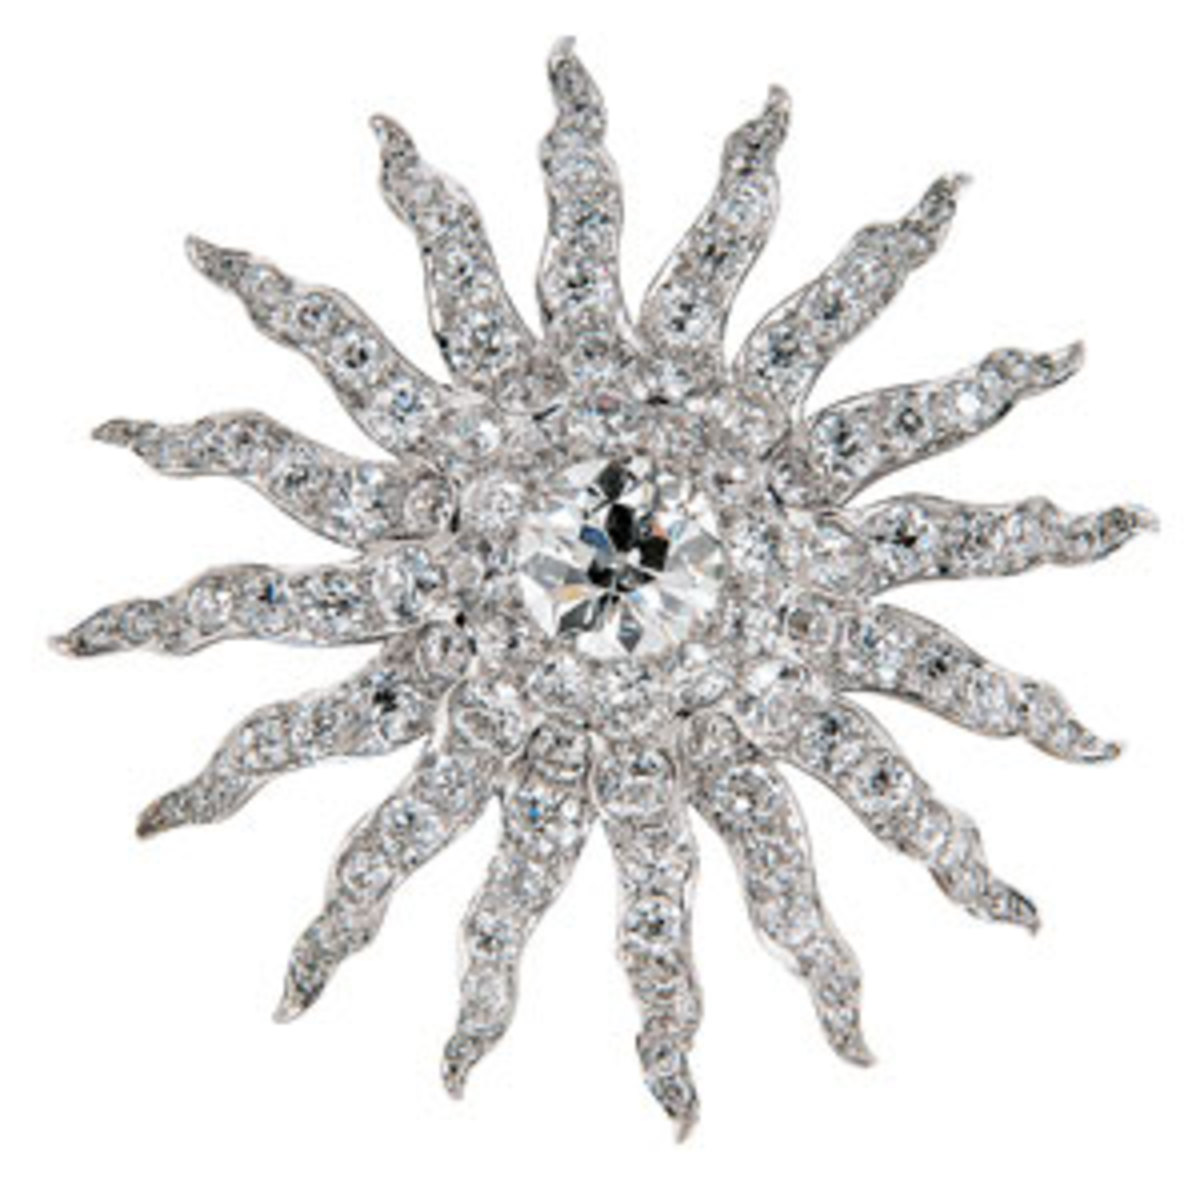 """Antique diamond sunburst brooch, Howard & Co.,late 19th century, centering an old European-cut diamond weighing approx. 6.25 cts., and old European- and old mine-cut diamonds, approx. total wt. 21.25 cts., platinum-topped gold mount, 2-5/8"""" l, signed, in original fitted box.Estimate $30,000-$50,000. Provenance: Descended in the family of Mrs. Hope Goddard Iselin of New York and Newport, from her mother, Mary Edith Jenckes Goddard.Mrs. Iselin was an avid horsewoman, golfer and accomplished sailor who competed on an international level."""